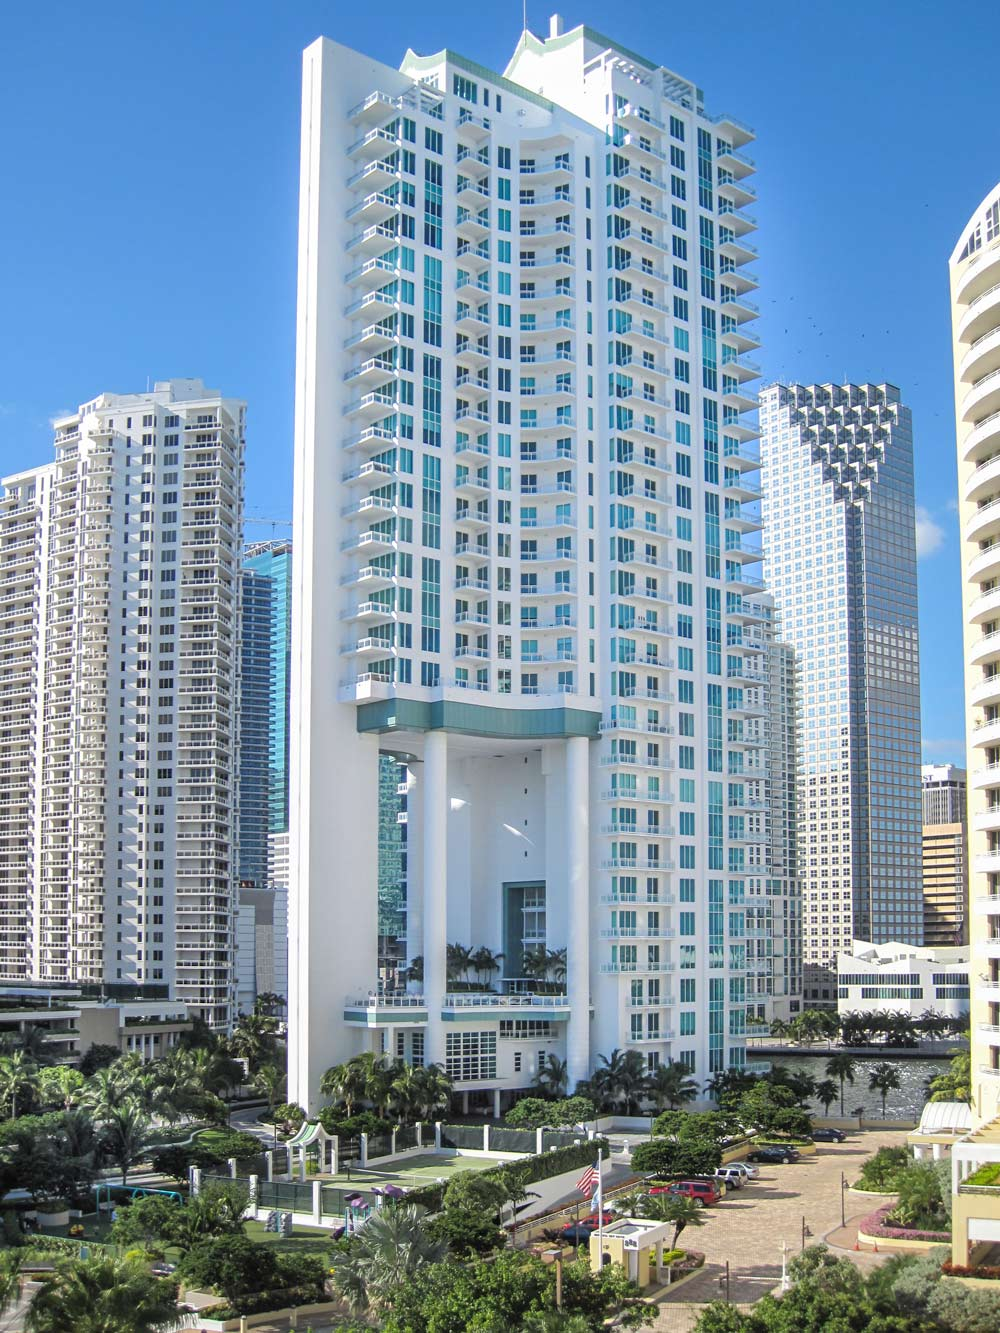 900 brickell key blvd miami fl 33131 asia brickell key island